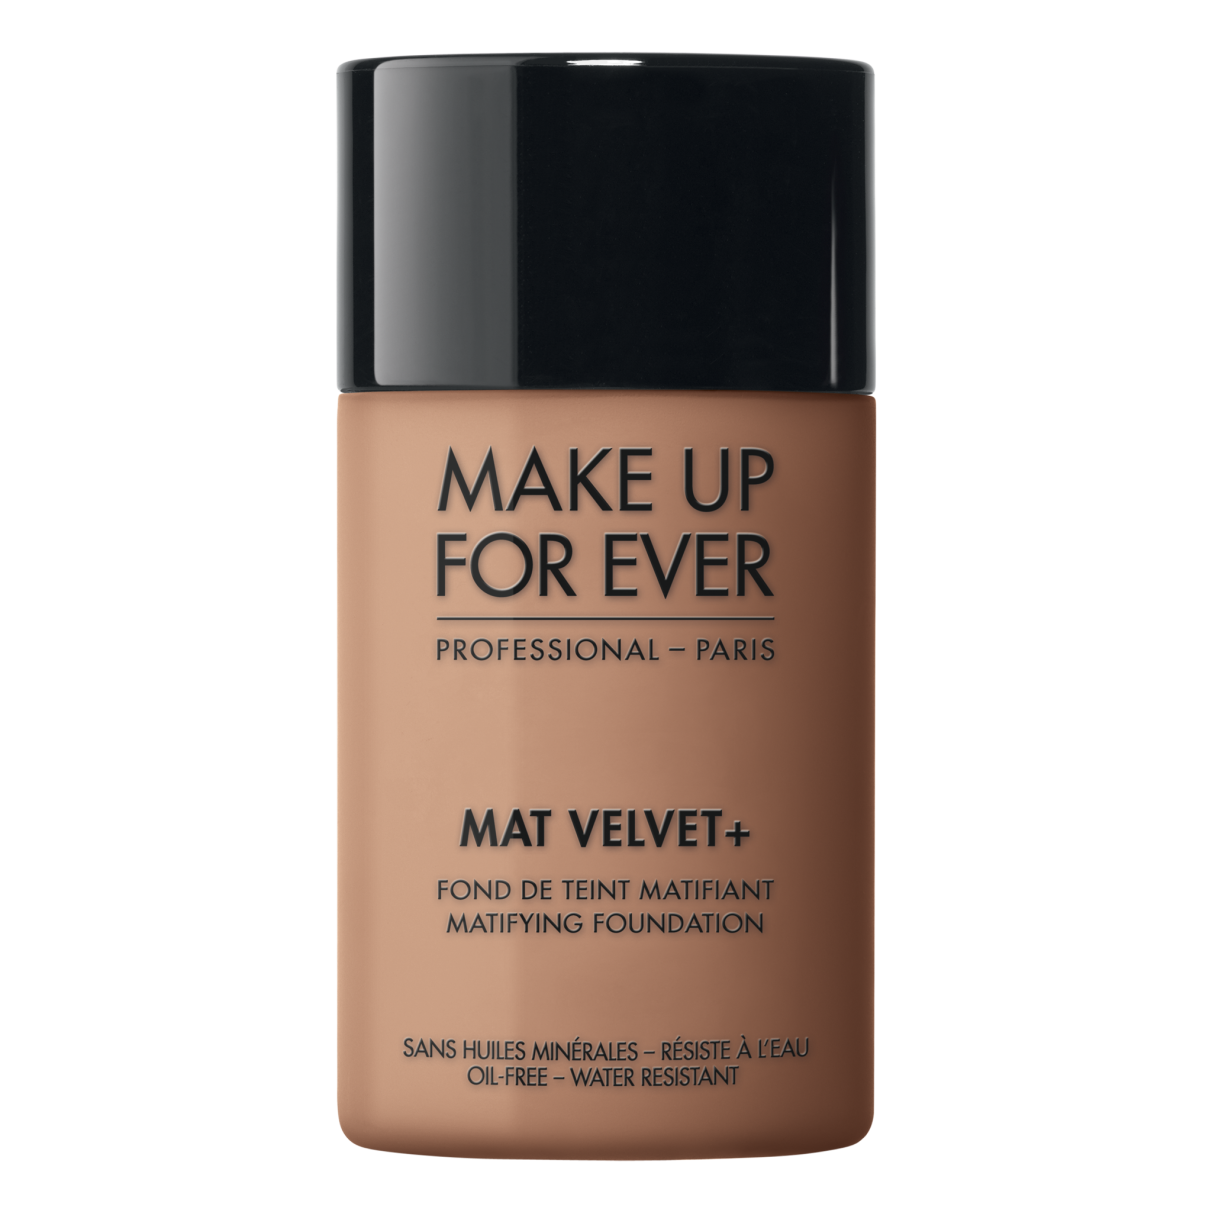 Mat Velvet + Caramel Matifying Foundation 37070 Makeup